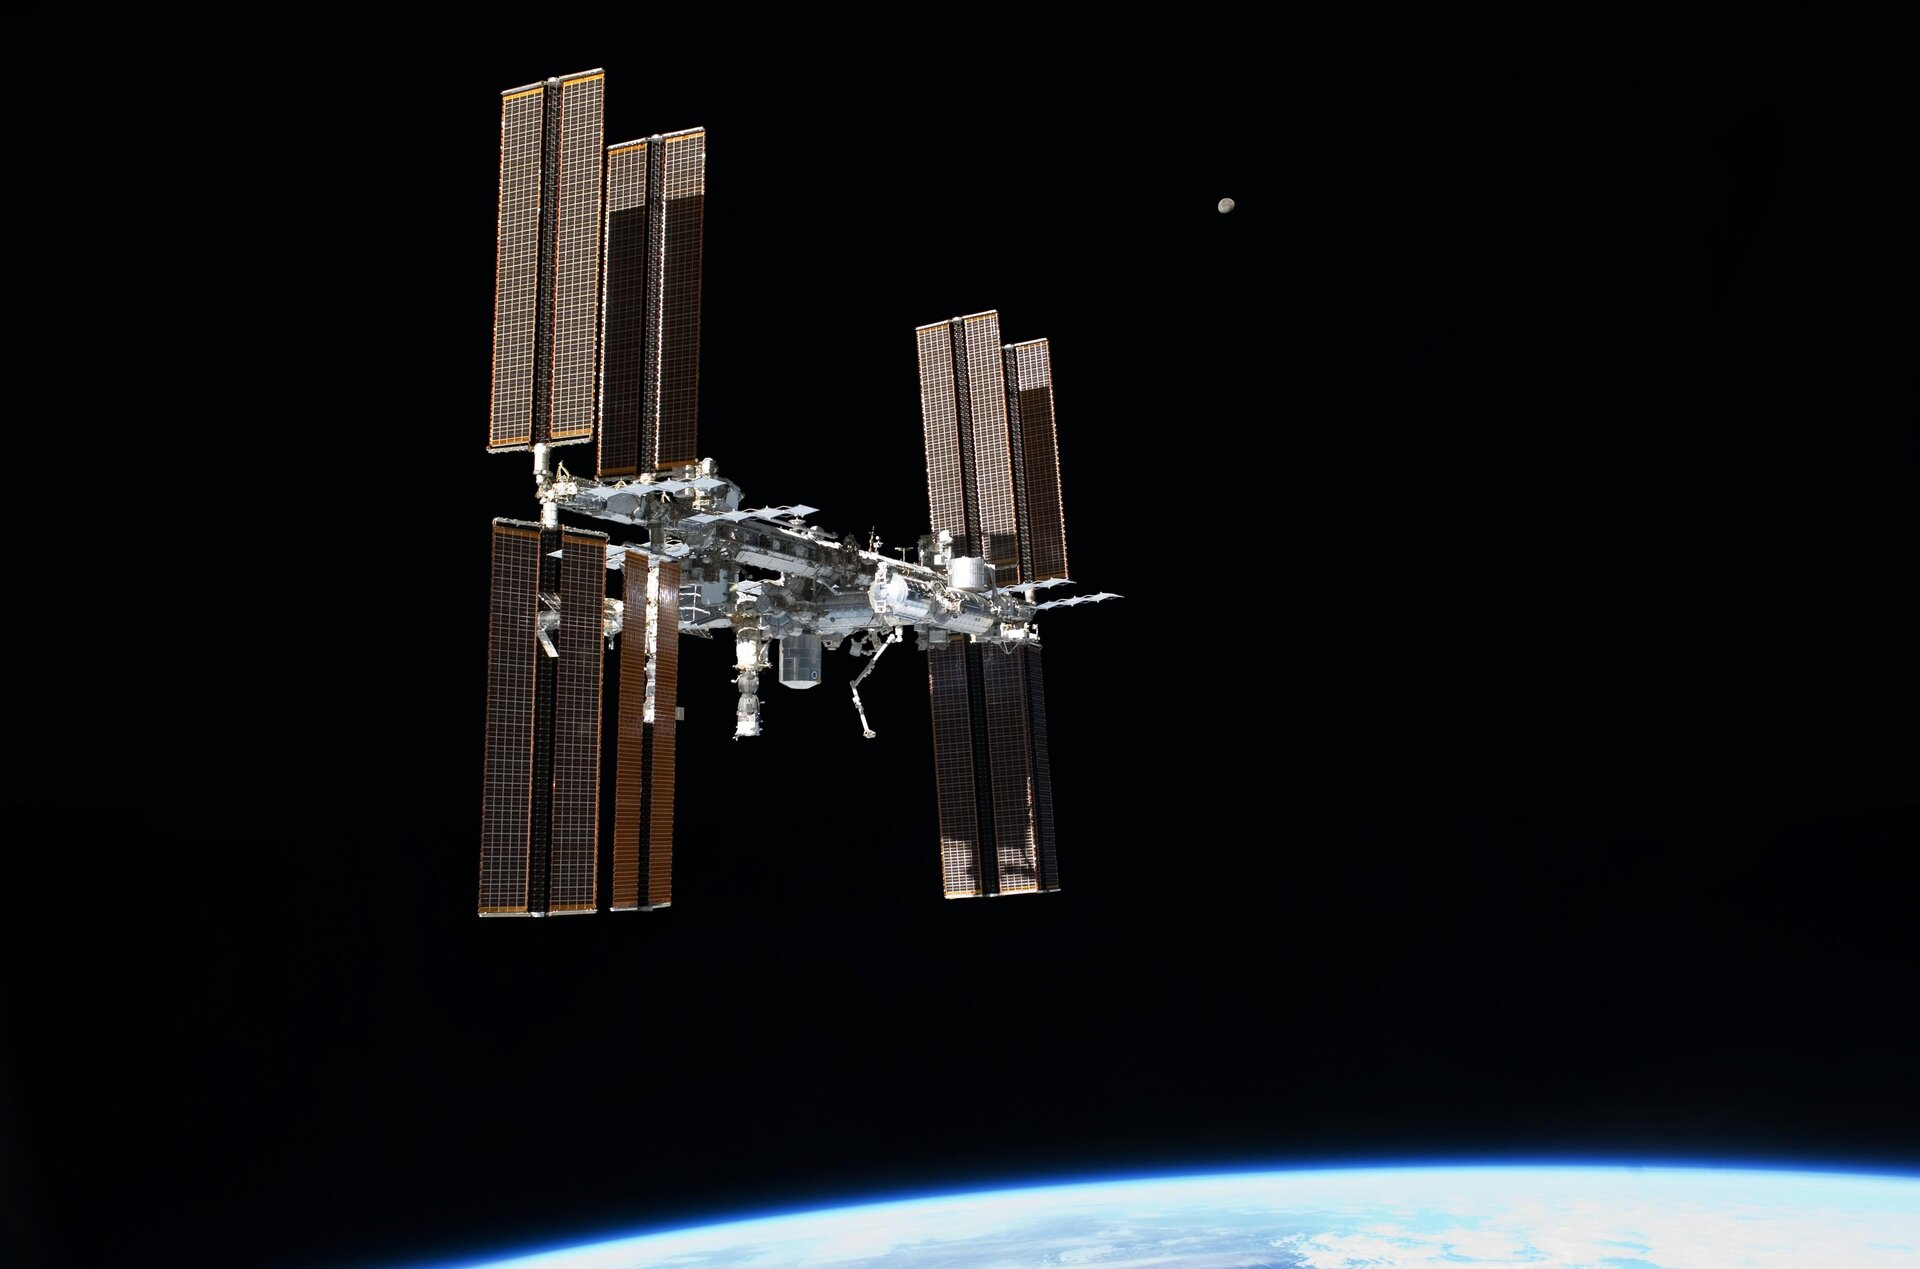 The ISS orbits at an altitude of 330–435 km above Earth's surface.